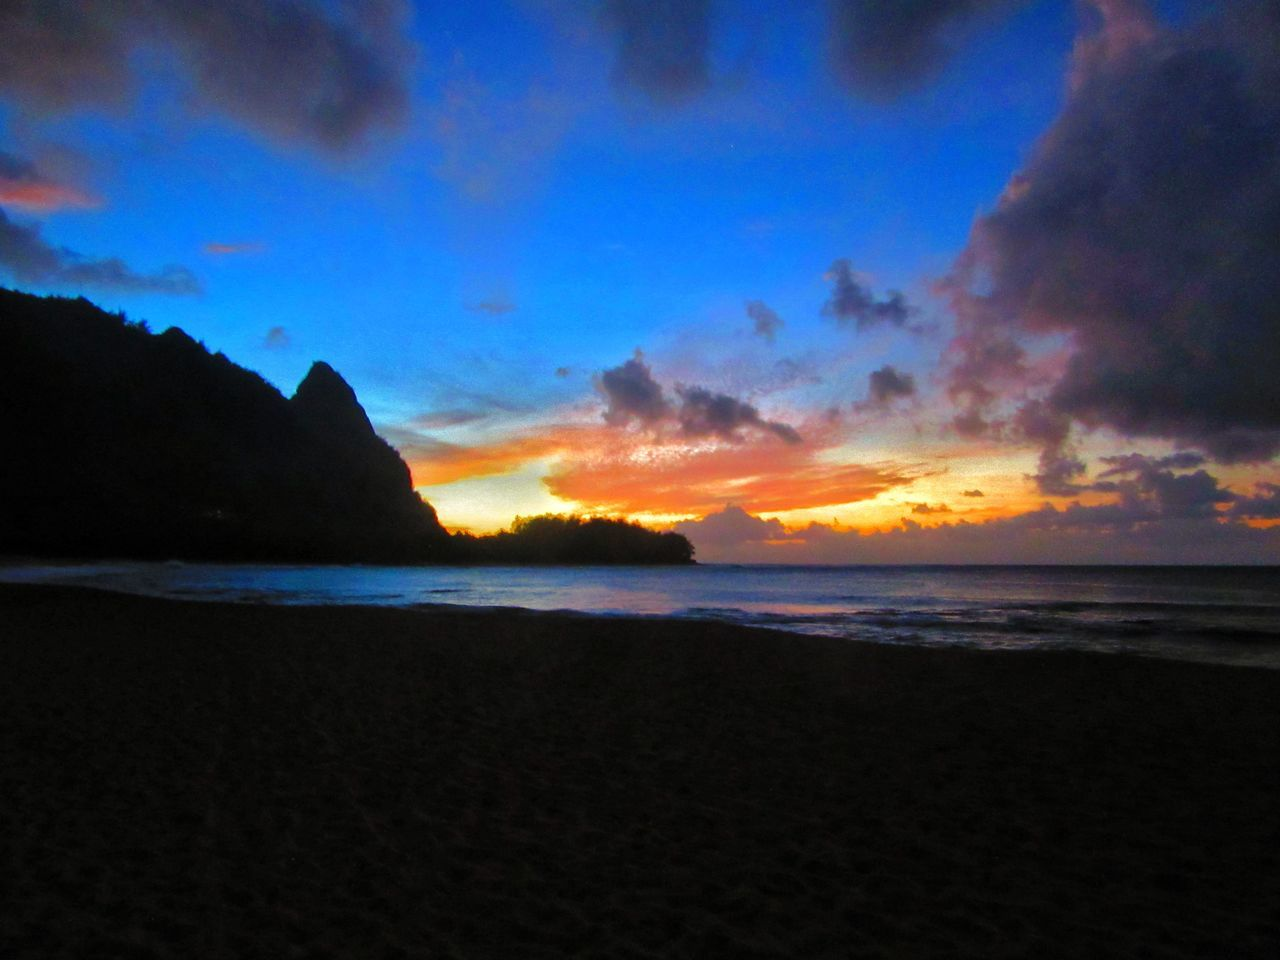 Beach Beauty In Nature Cloud - Sky Idyllic Kauai Kauai♡ Nature No People Ocean Outdoors Scenics Sea Sky Sunset Tranquil Scene Water